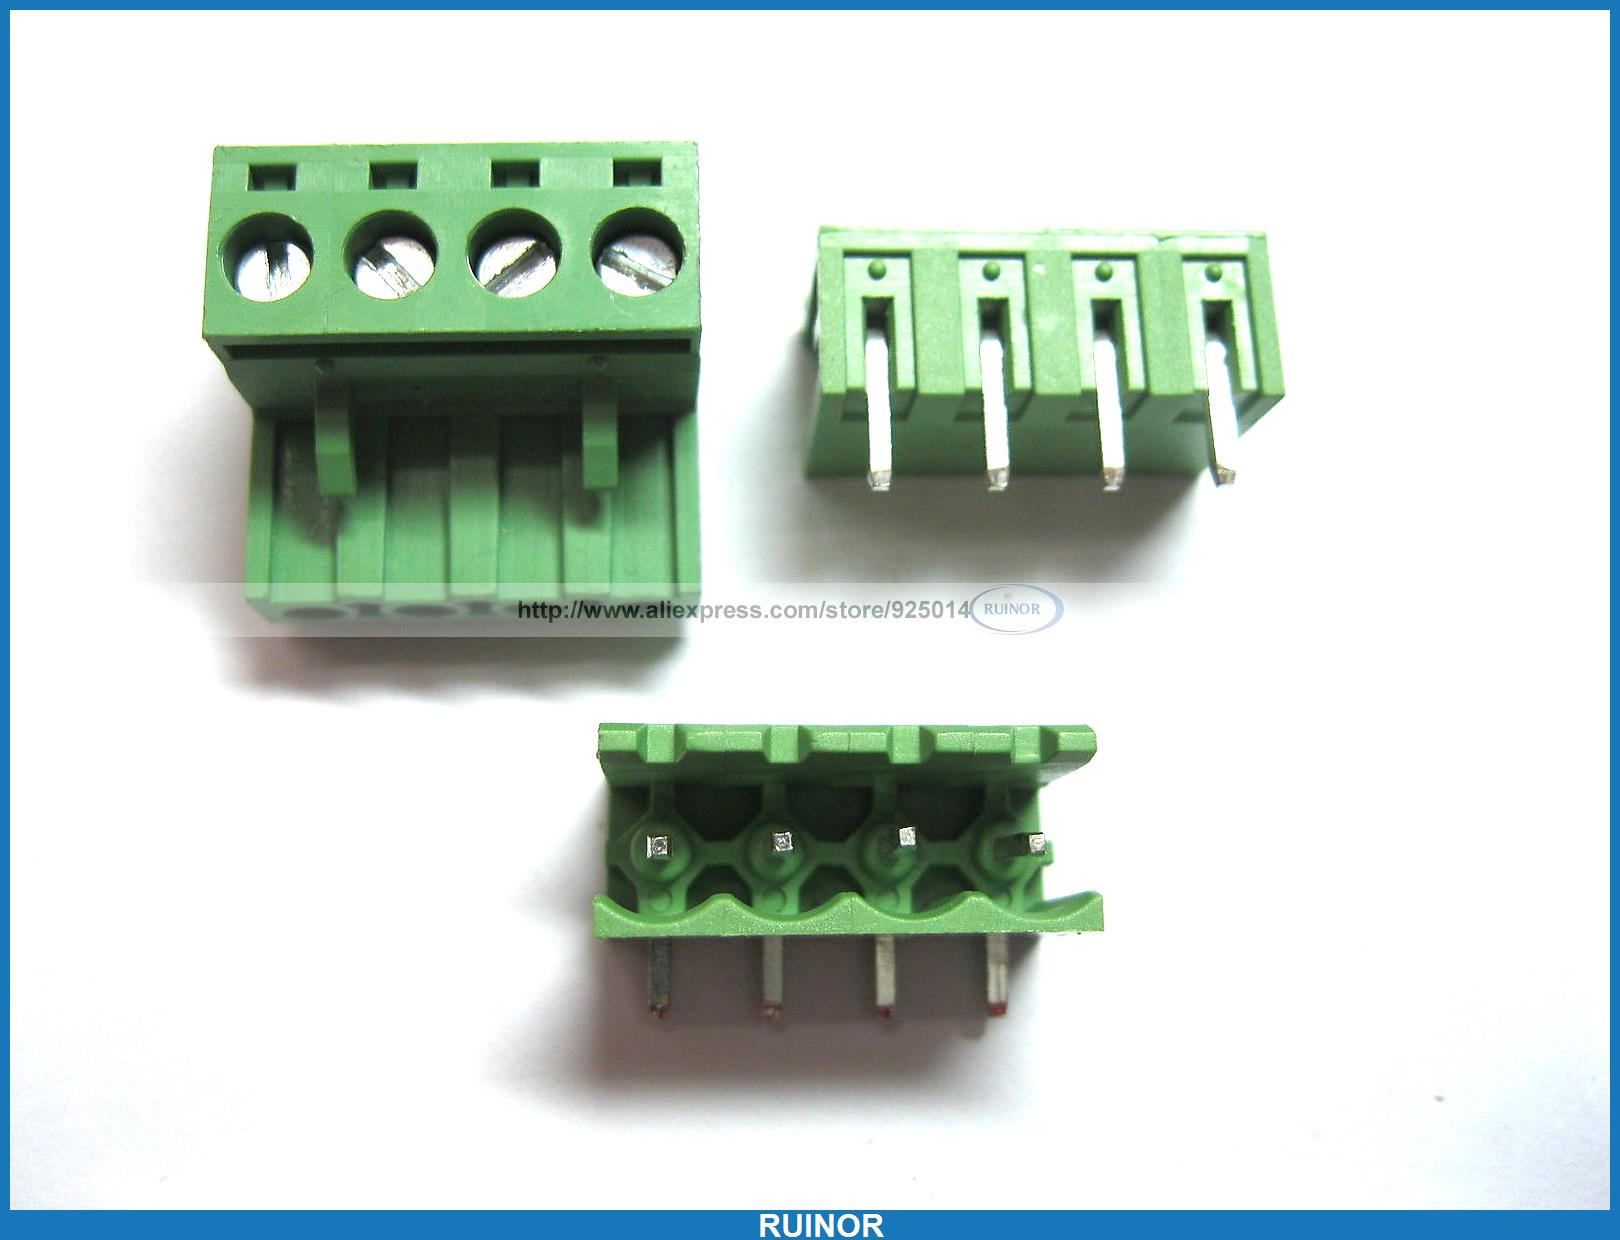 50 Pcs 5 08mm Angle 4 Pin Screw Terminal Block Connector Pluggable Type Green 1825242[pluggable terminal blocks 14 pos 5 08mm pitch thru h mr li